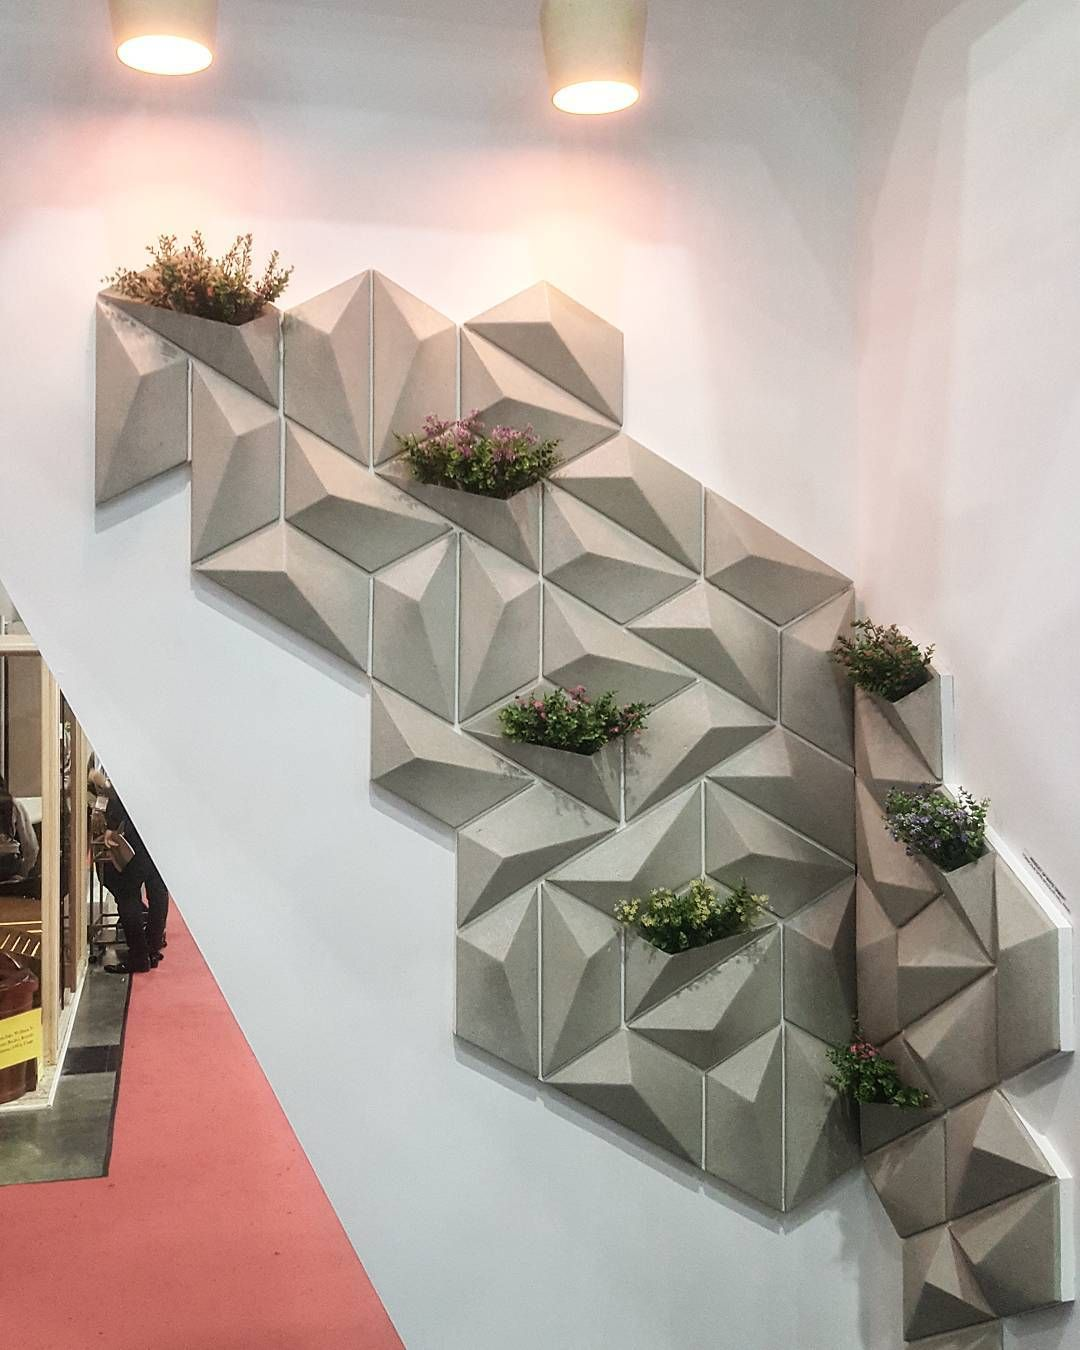 Finished Installation Of The Modular Wall Panel With Integrated Planter In Archidex Show 2017 In Malaysia Ntarchistudio Malaysia Booth Design Whi